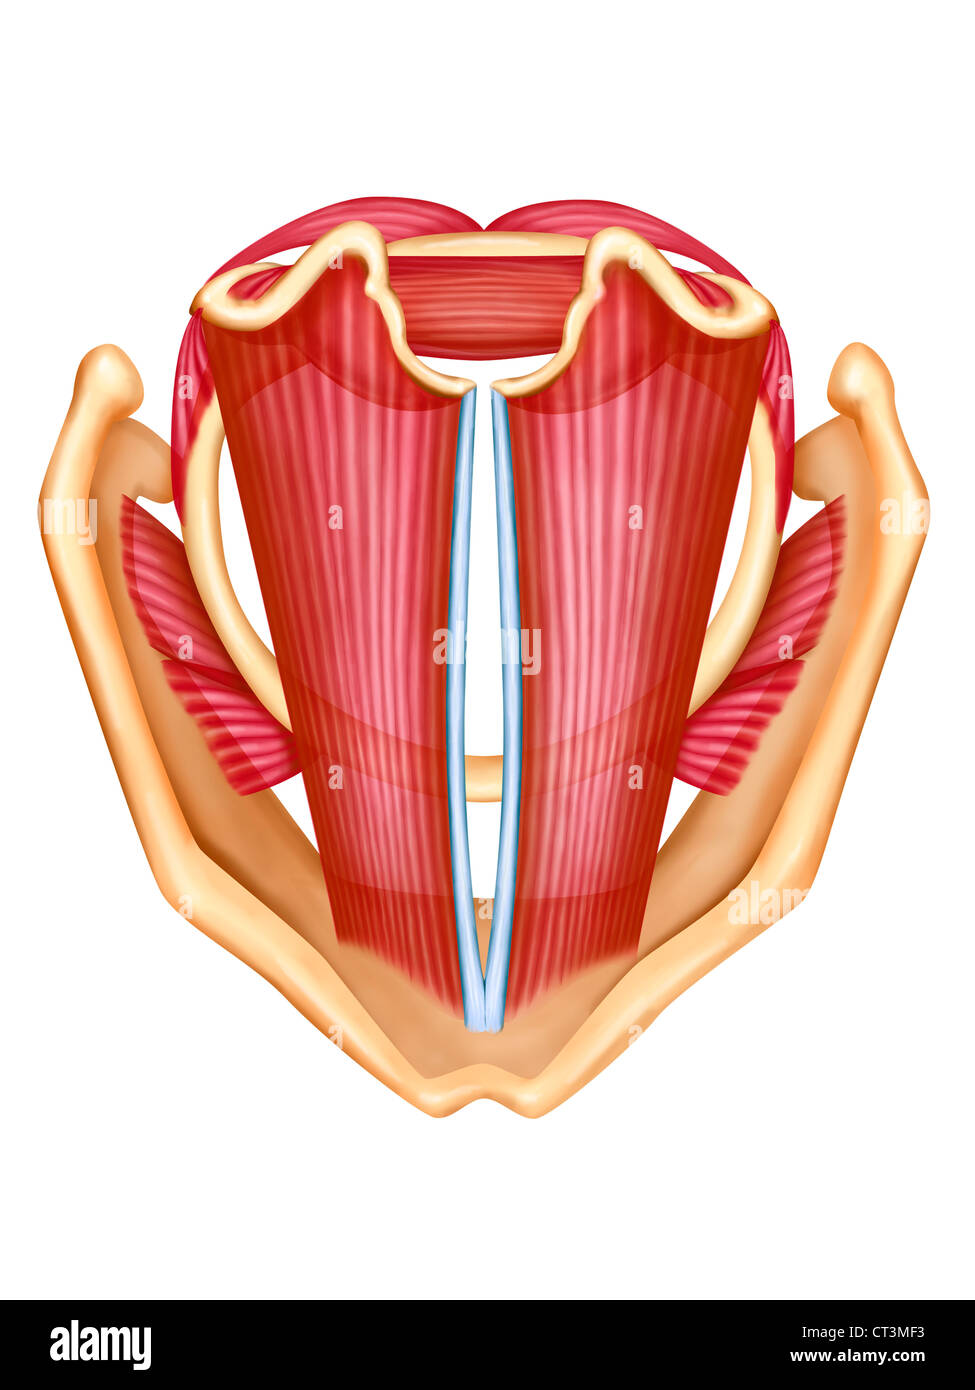 VOCAL CORD, DRAWING Stock Photo: 49254439 - Alamy